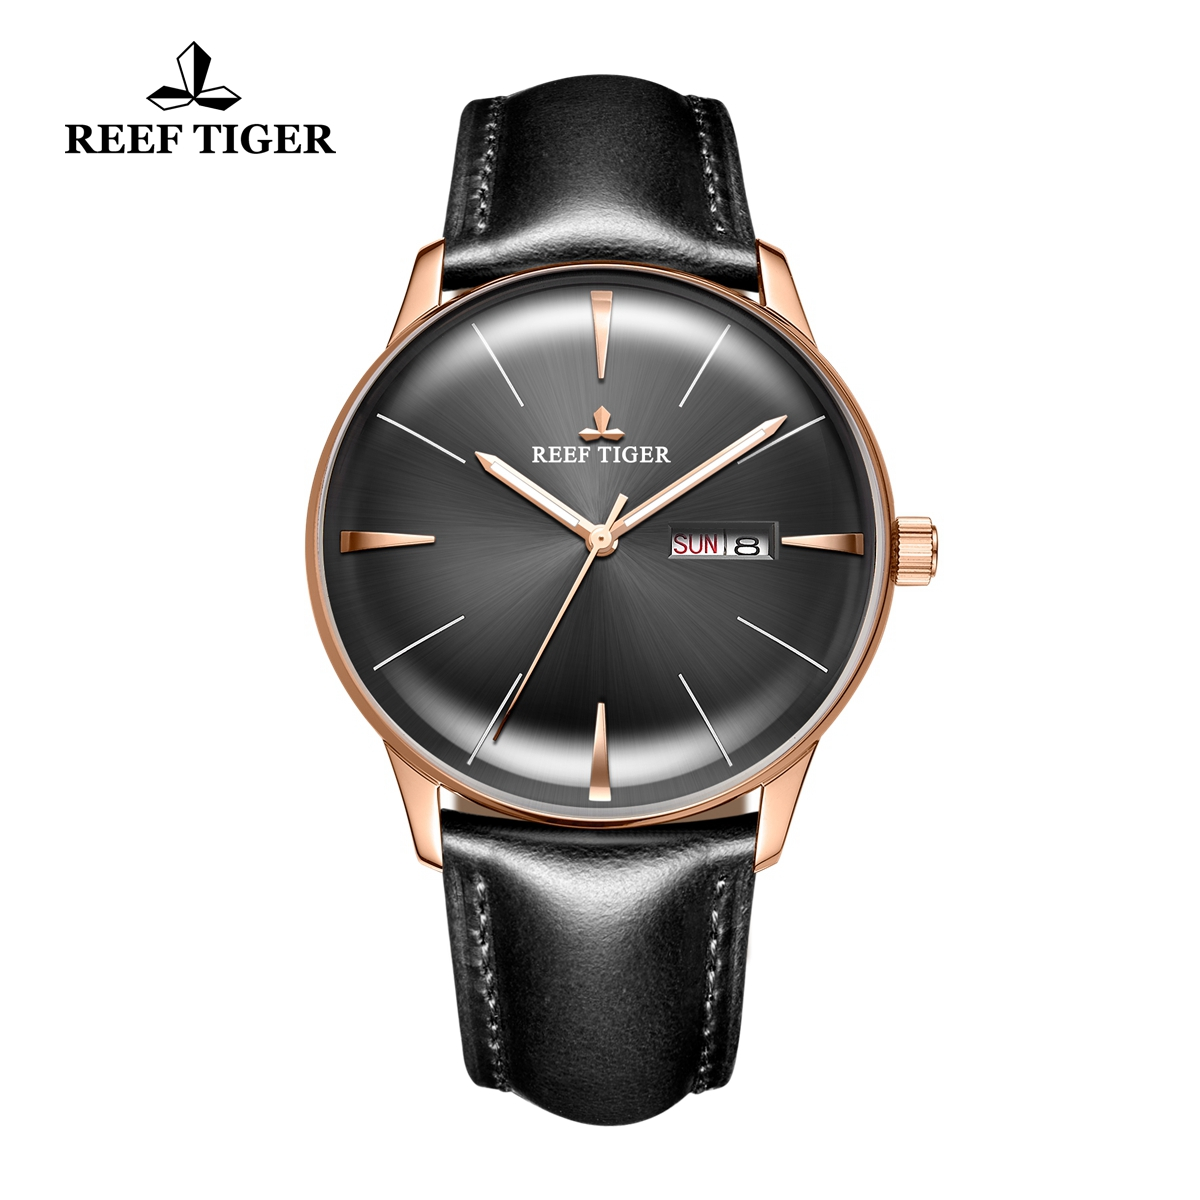 Reef Tiger Classic Heritor Rose Gold Automatic Watch Black Dial Leather Strap For Men Watches RGA8238-PBBH